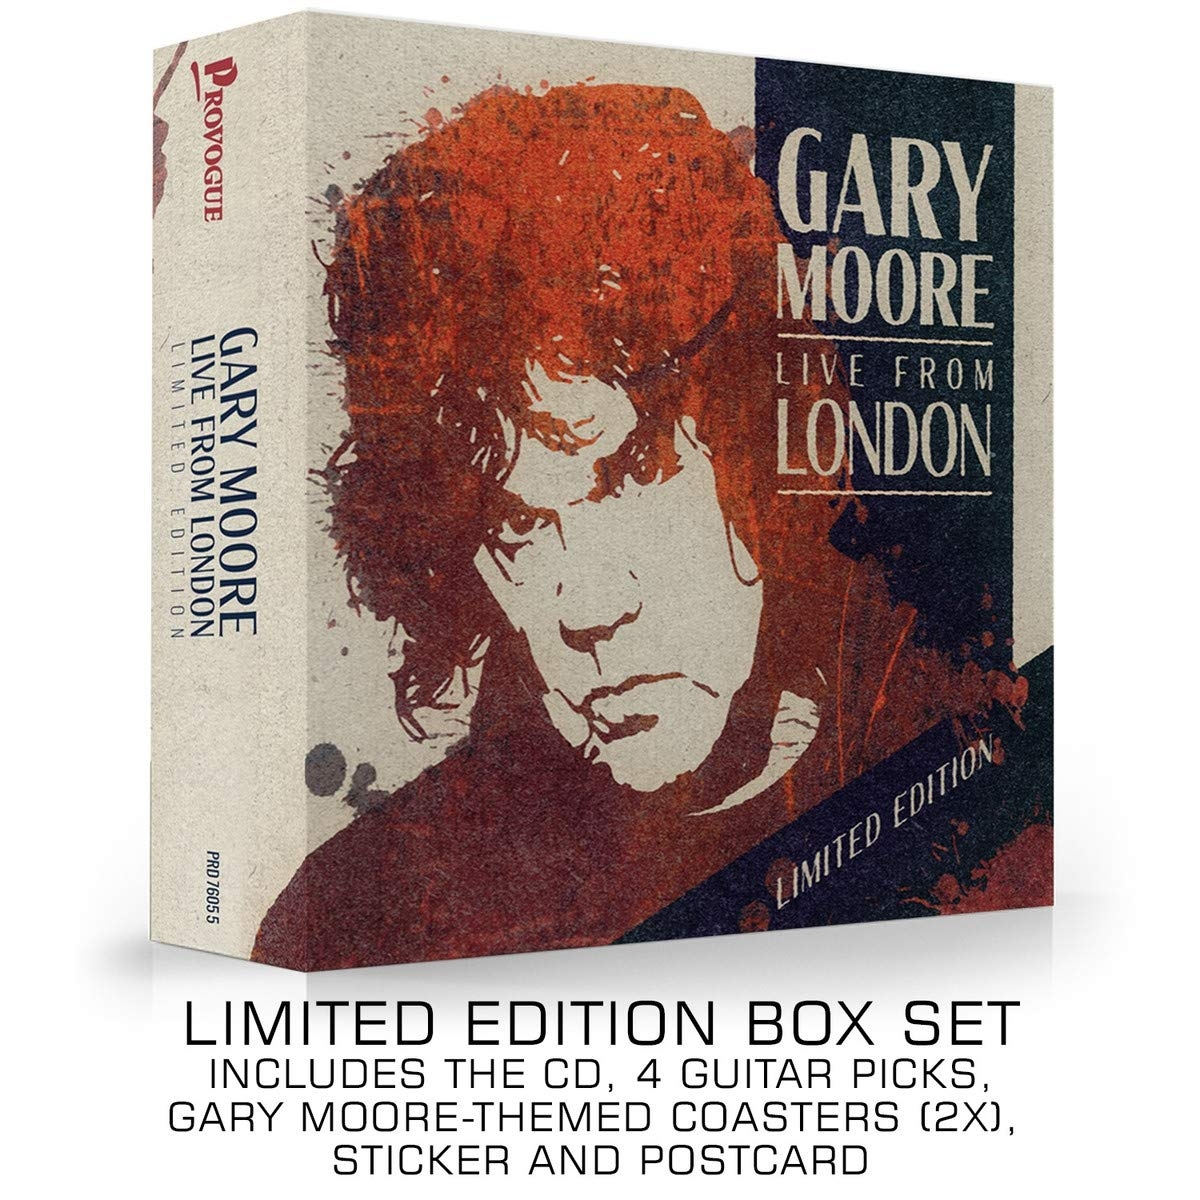 Live From London Limited Edition